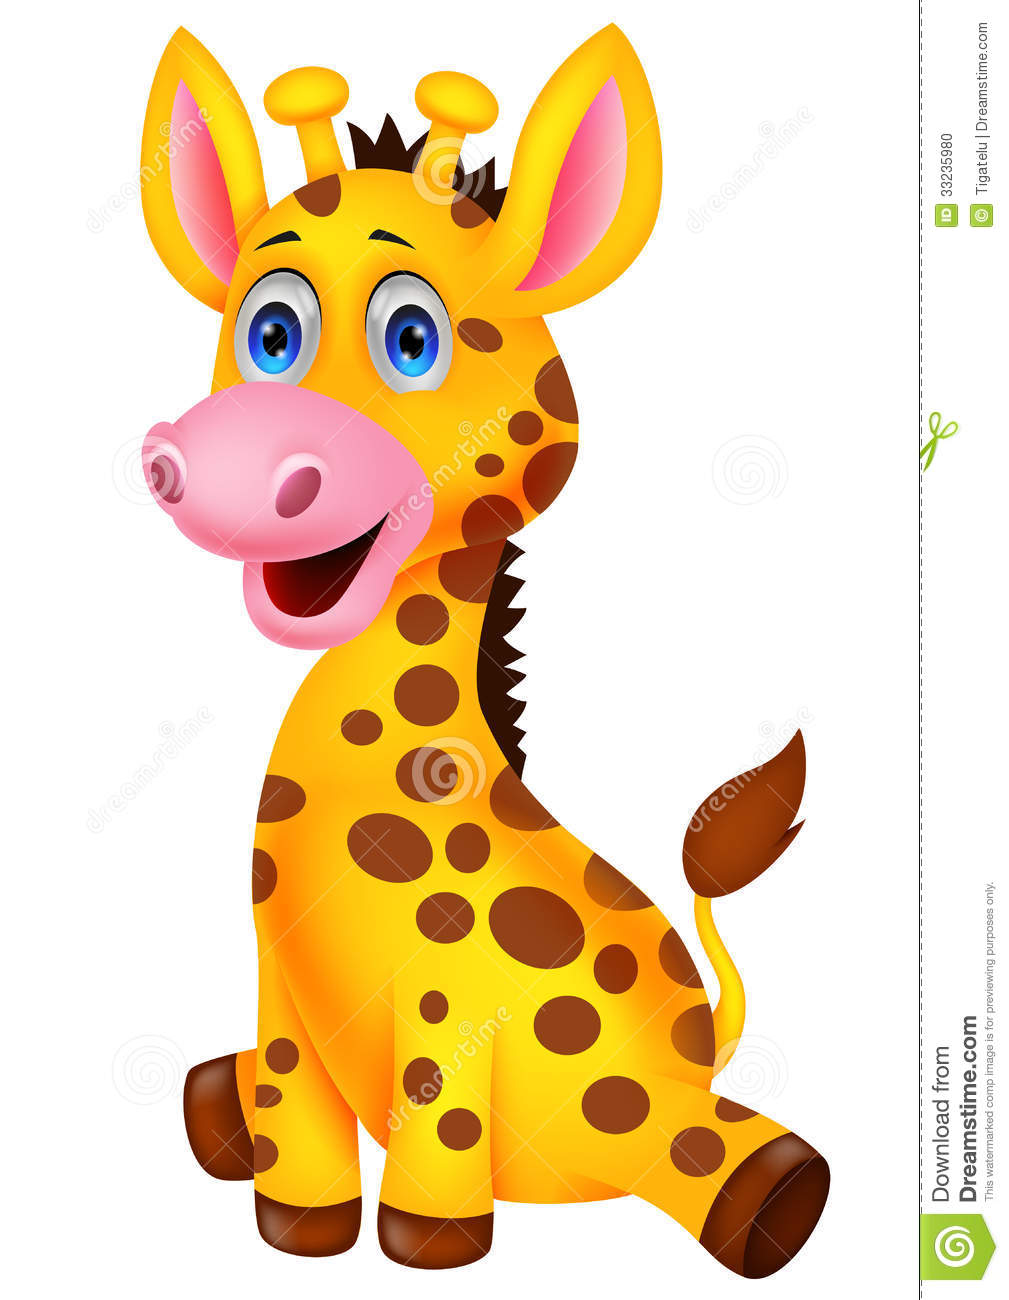 Cute Baby Giraffe Cartoon Stock Photo - Image: 33235980